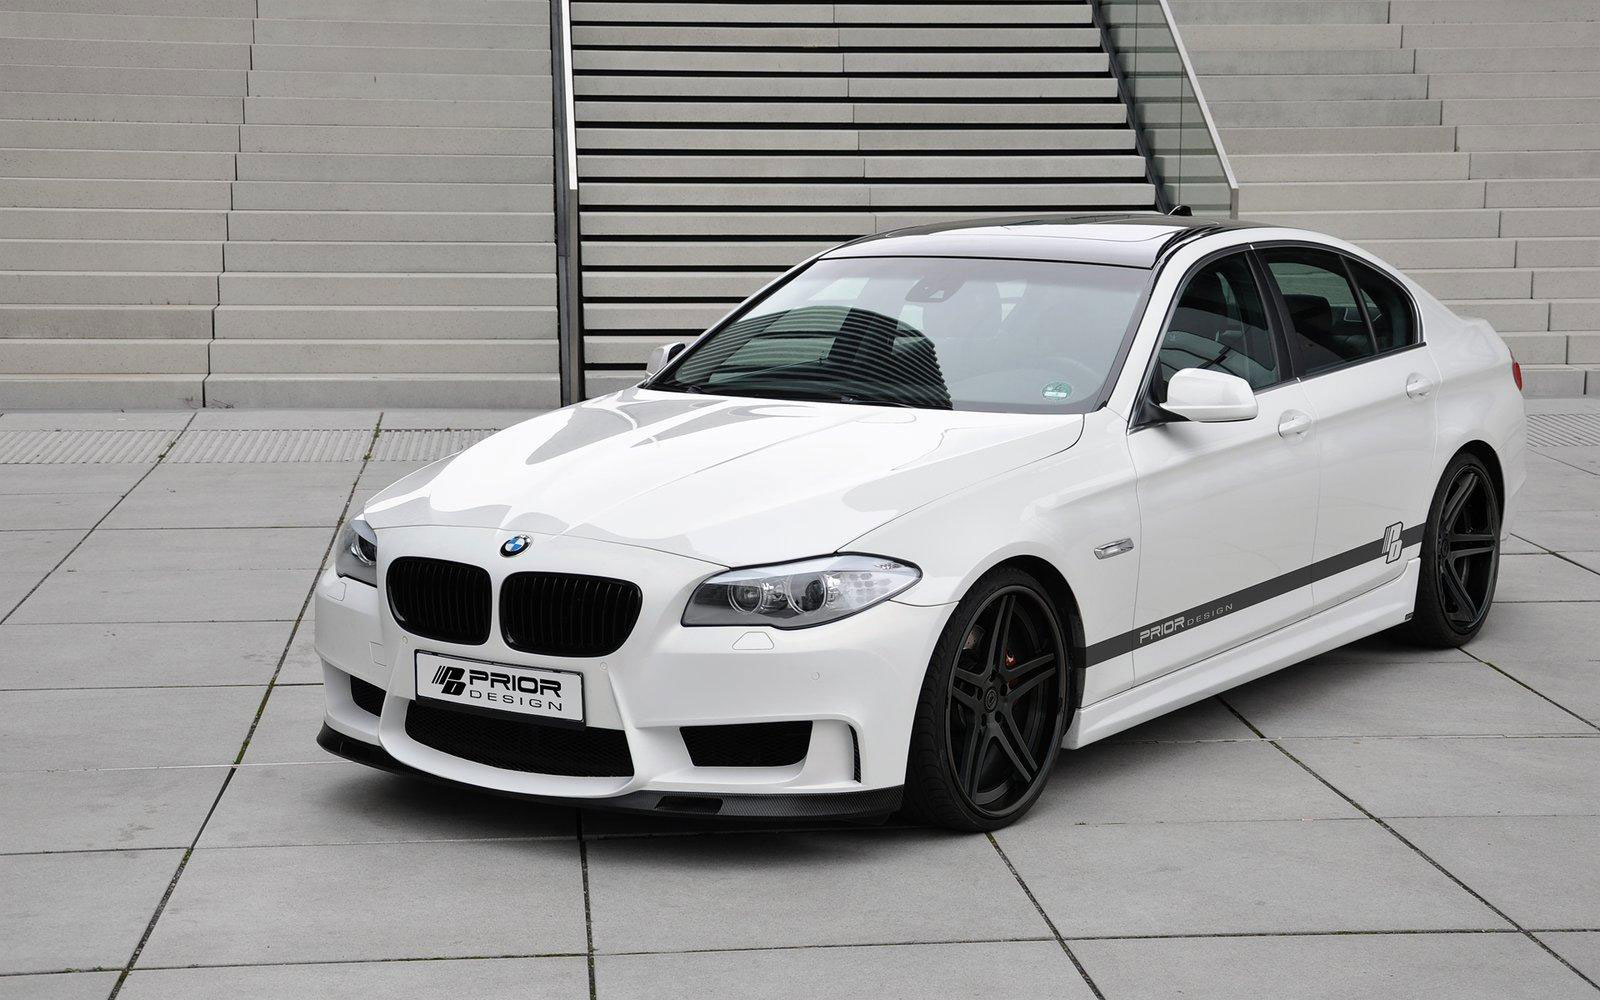 bmw 5 series f10 with prior design body kit sport cars. Black Bedroom Furniture Sets. Home Design Ideas